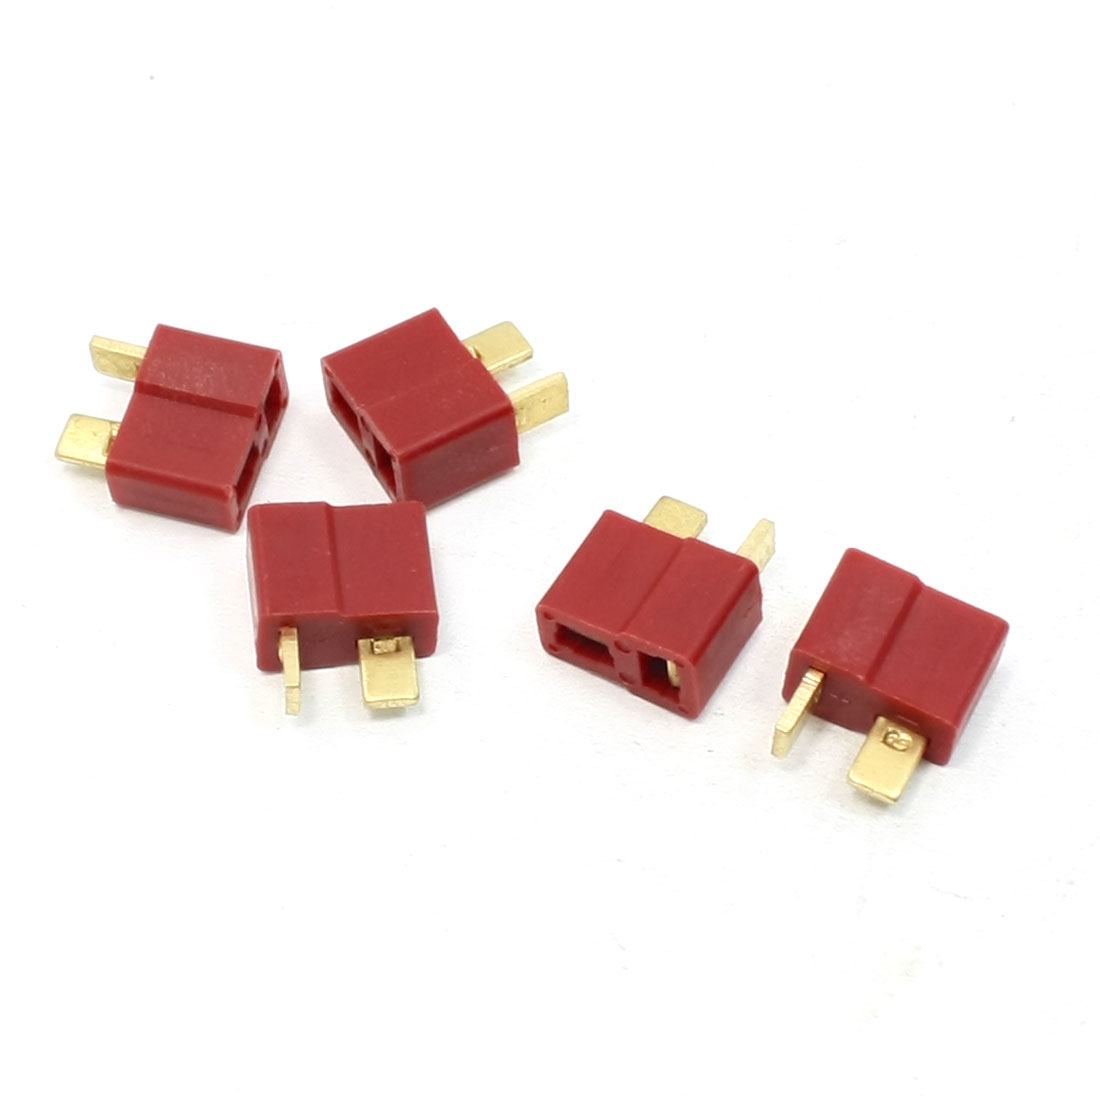 5 Pcs Replacing Y307 T Female Connector for RC Battery Vehicle